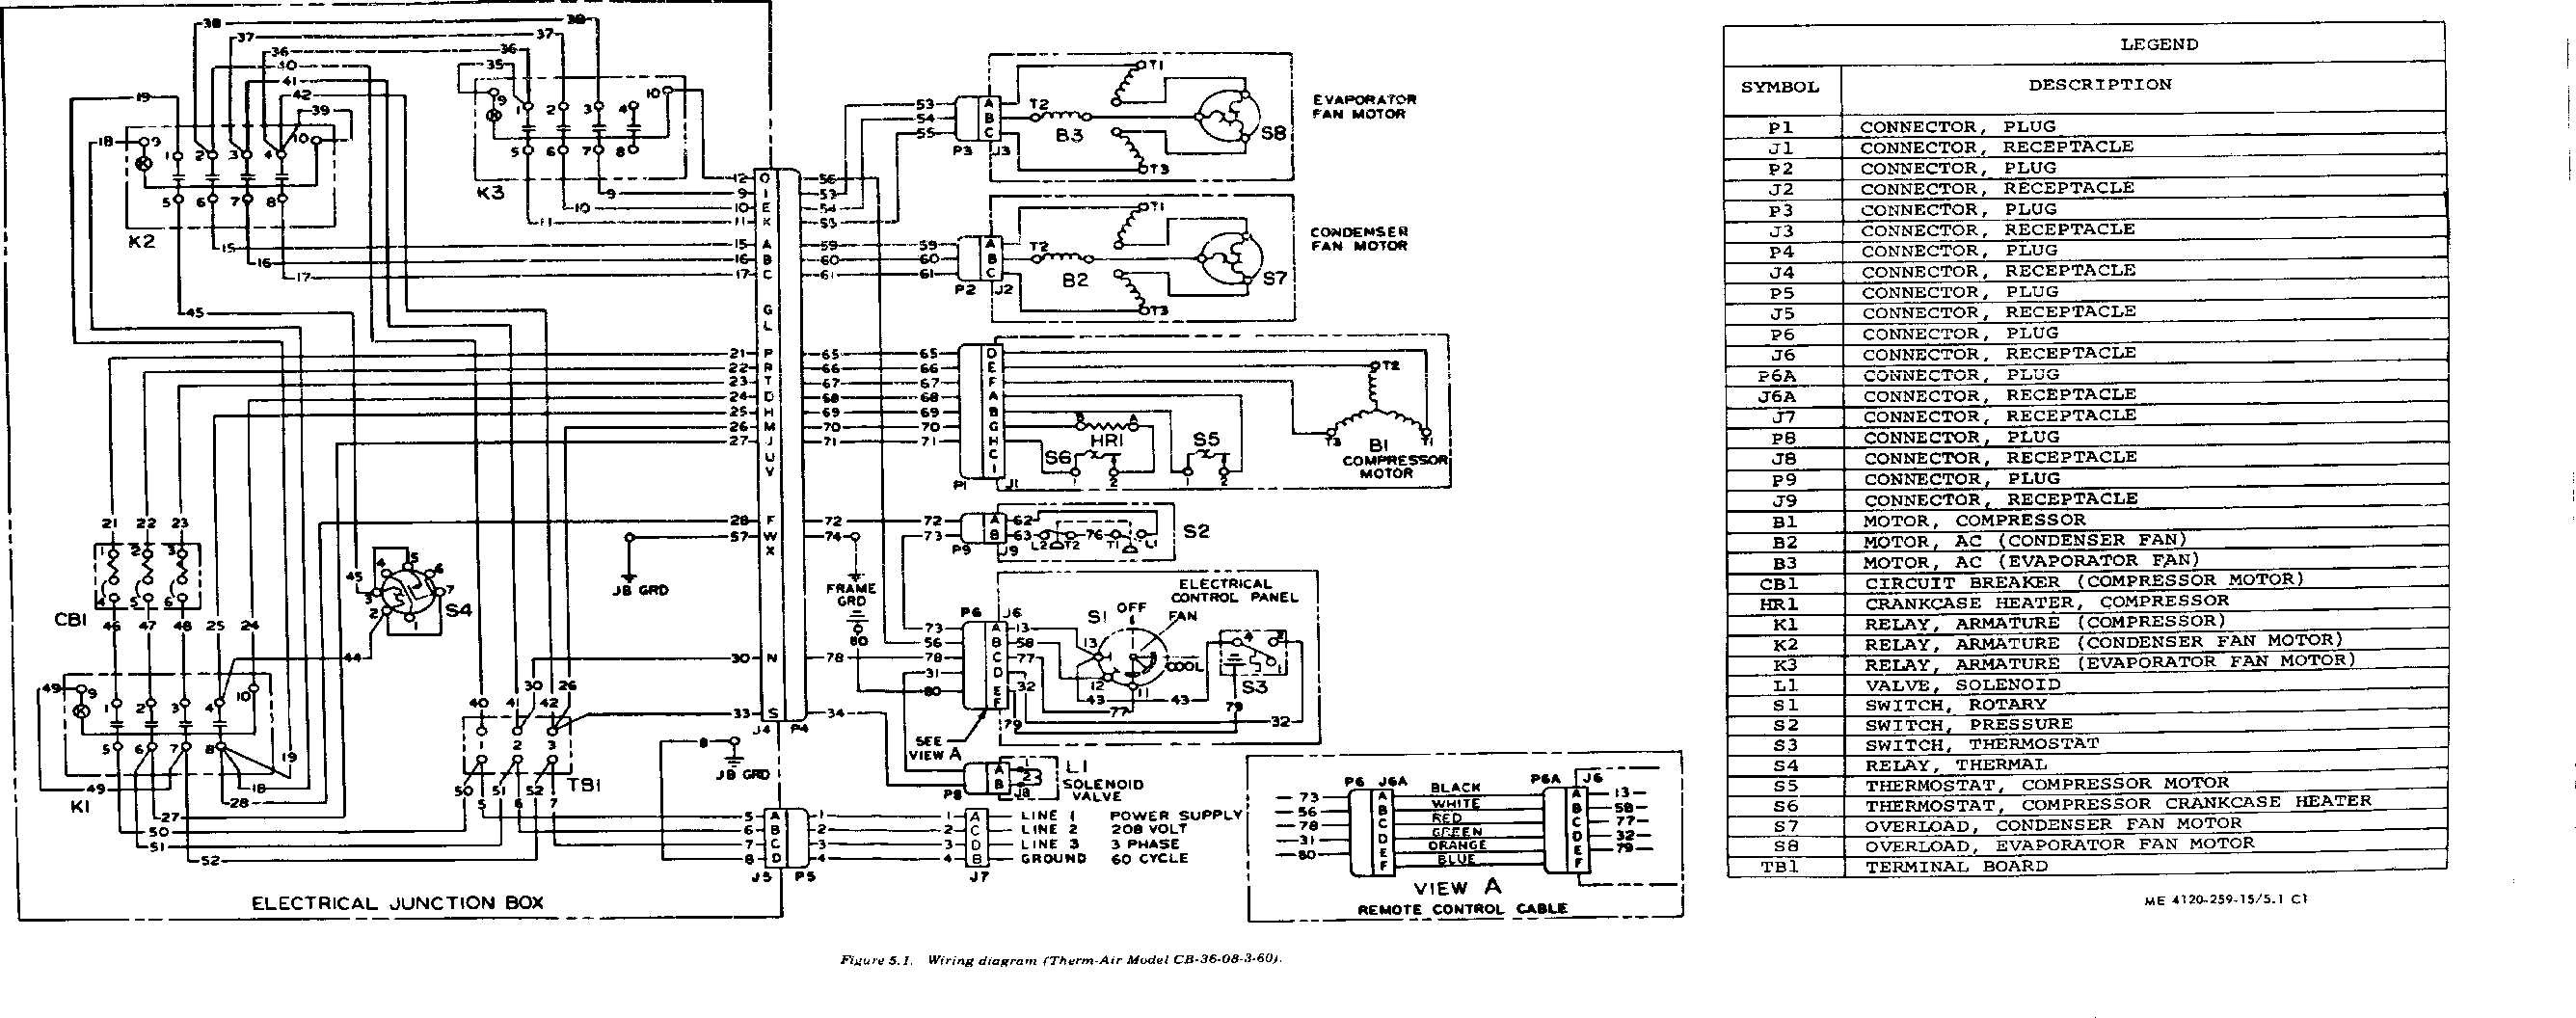 Gallery Of Hvac Wiring Diagram Pdf Sample on central air conditioning diagram, basic electrical ladder diagram, basic hvac system diagram, basic electrical wiring outlet, basic electrical wiring diagrams, basic air flow diagram, basic hvac schematics, air conditioning refrigeration cycle diagram, basic automotive air conditioning diagram, basic electrical schematic diagrams, basic electrical wiring classes, car air conditioning schematic diagram, pneumatic hvac control system diagram, auto air conditioning diagram, circuit diagram, basic hvac ladder diagrams, air conditioning system diagram, air conditioner diagram, basic wiring schematics, basic air conditioning operation,